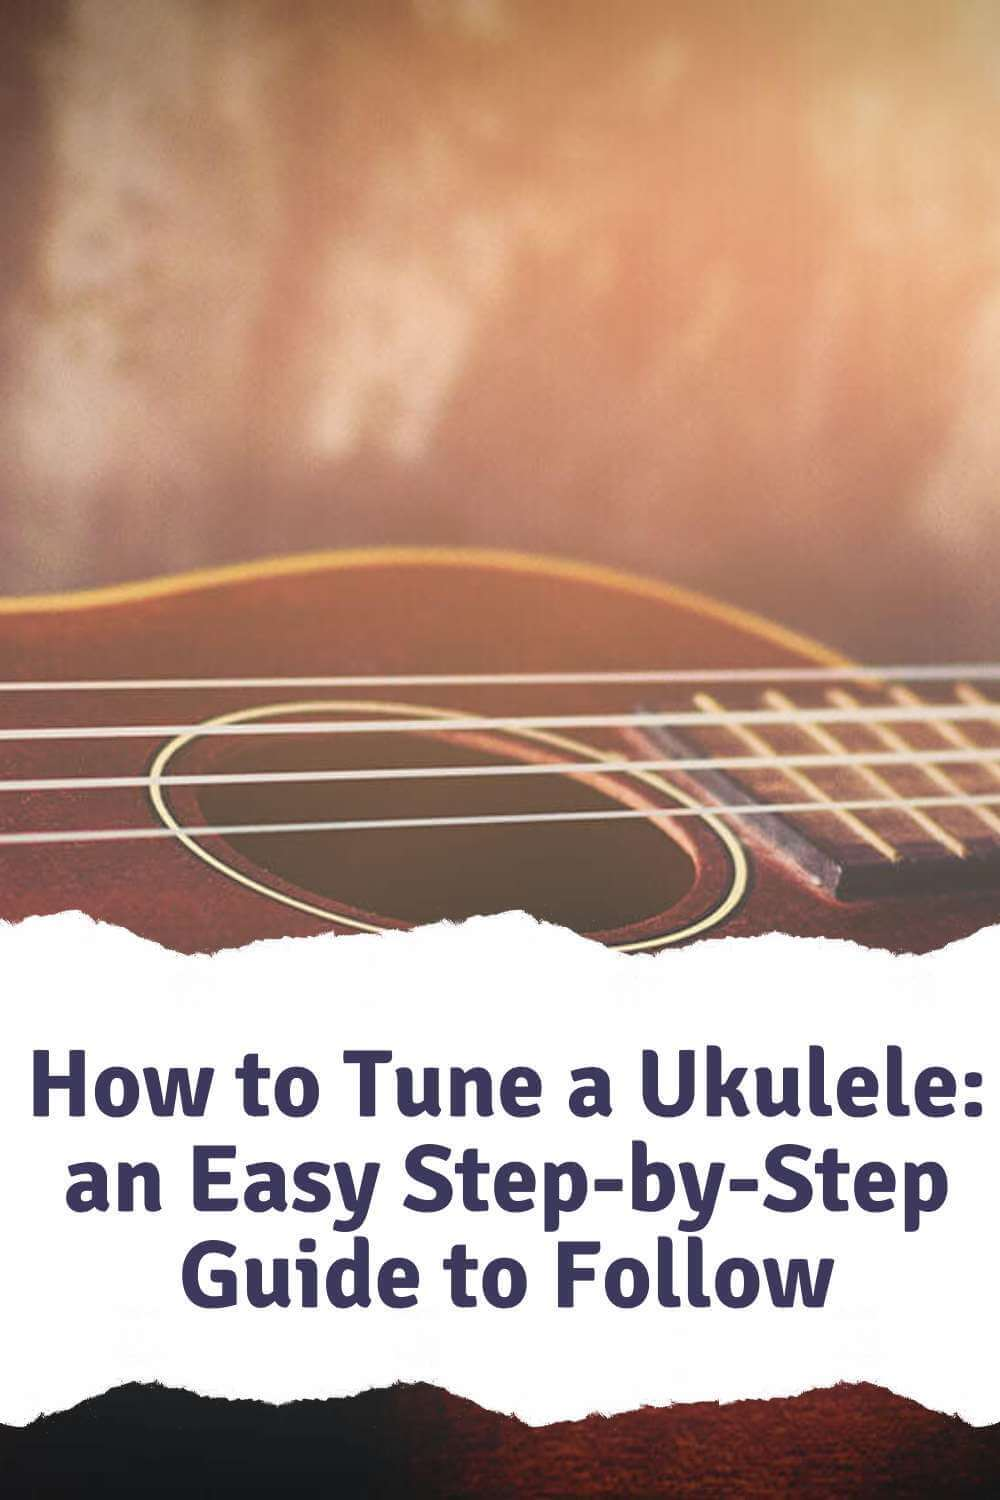 How to Tune a Ukulele an Easy Step-by-Step Guide to Follow